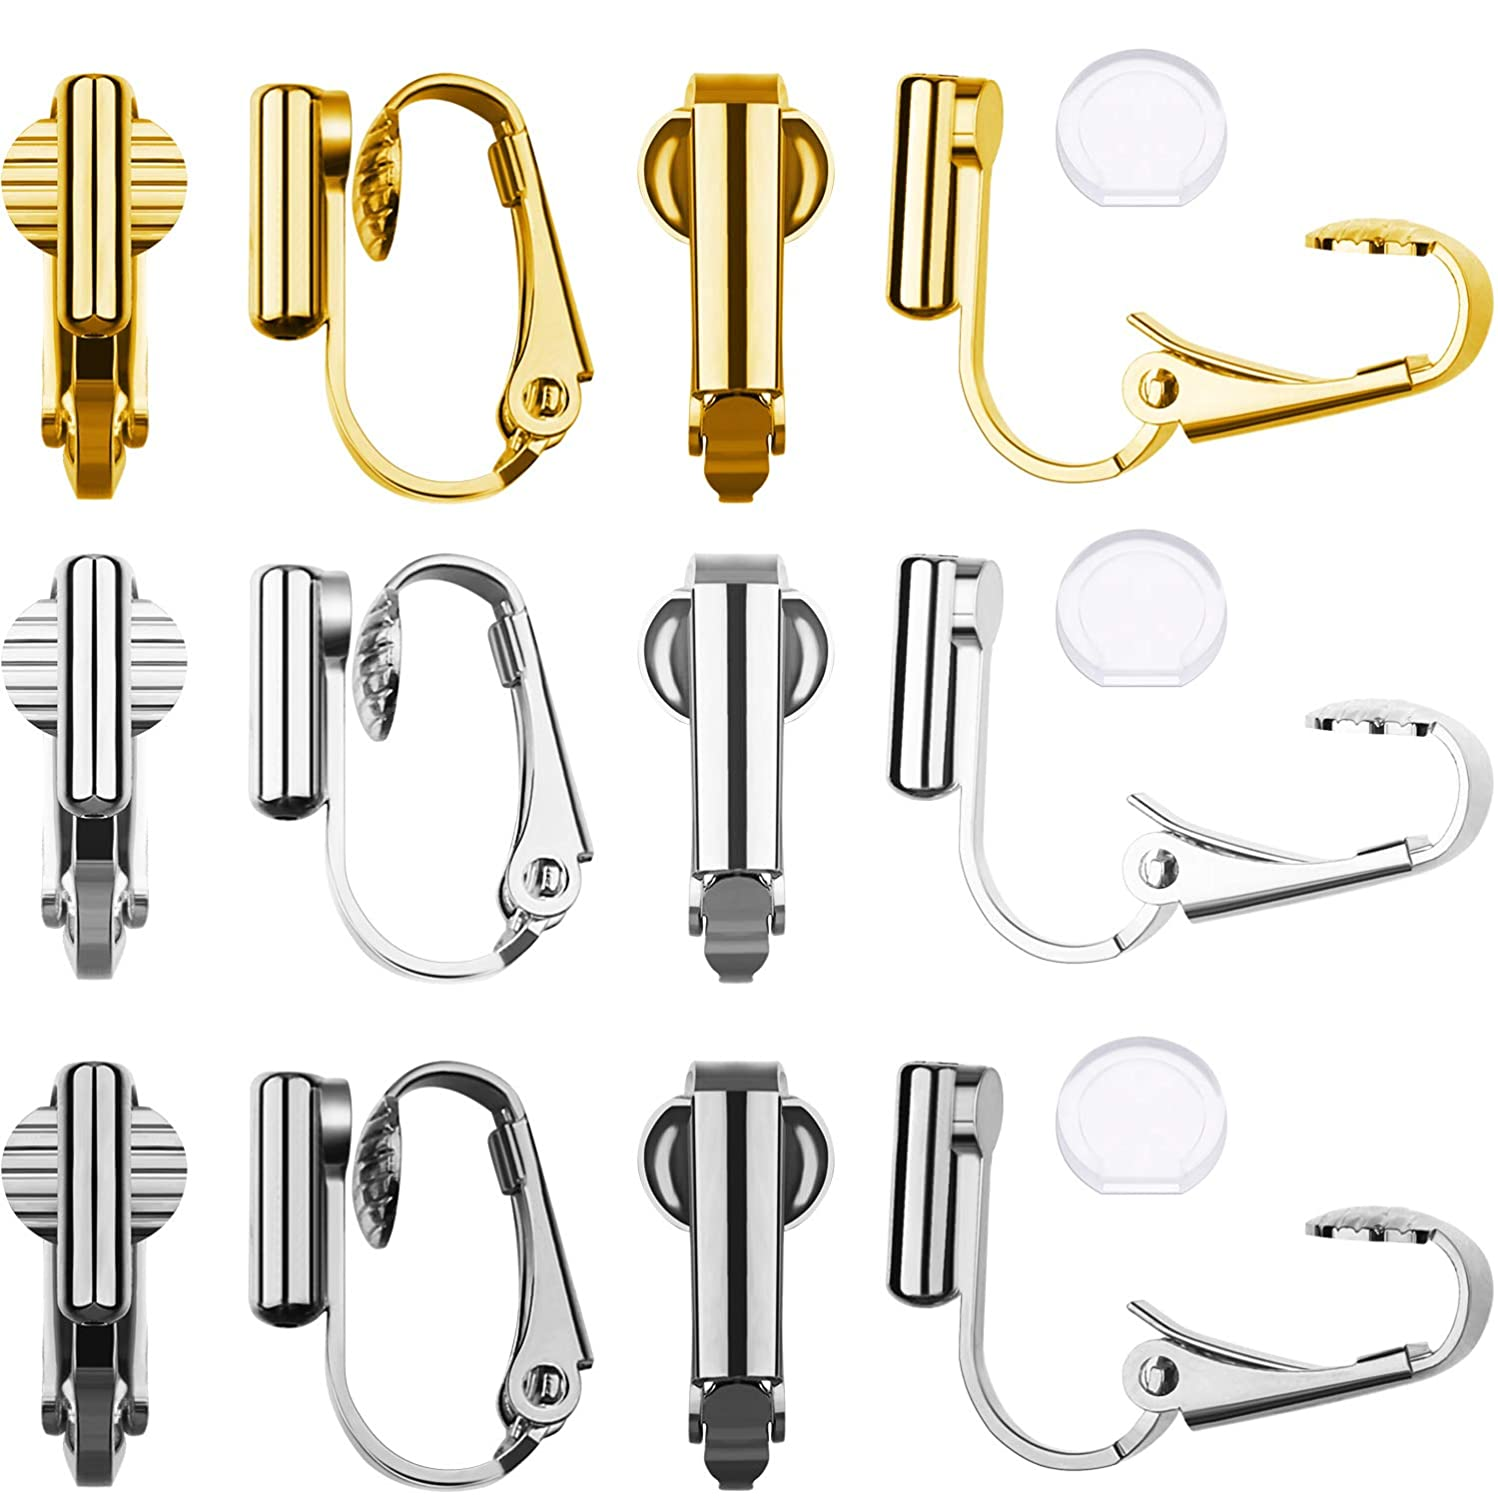 9 Pairs Clip-on Earrings Converter Components 3 Colors for Non-Pierced Ears and Comfort Earring Pads (Style A)